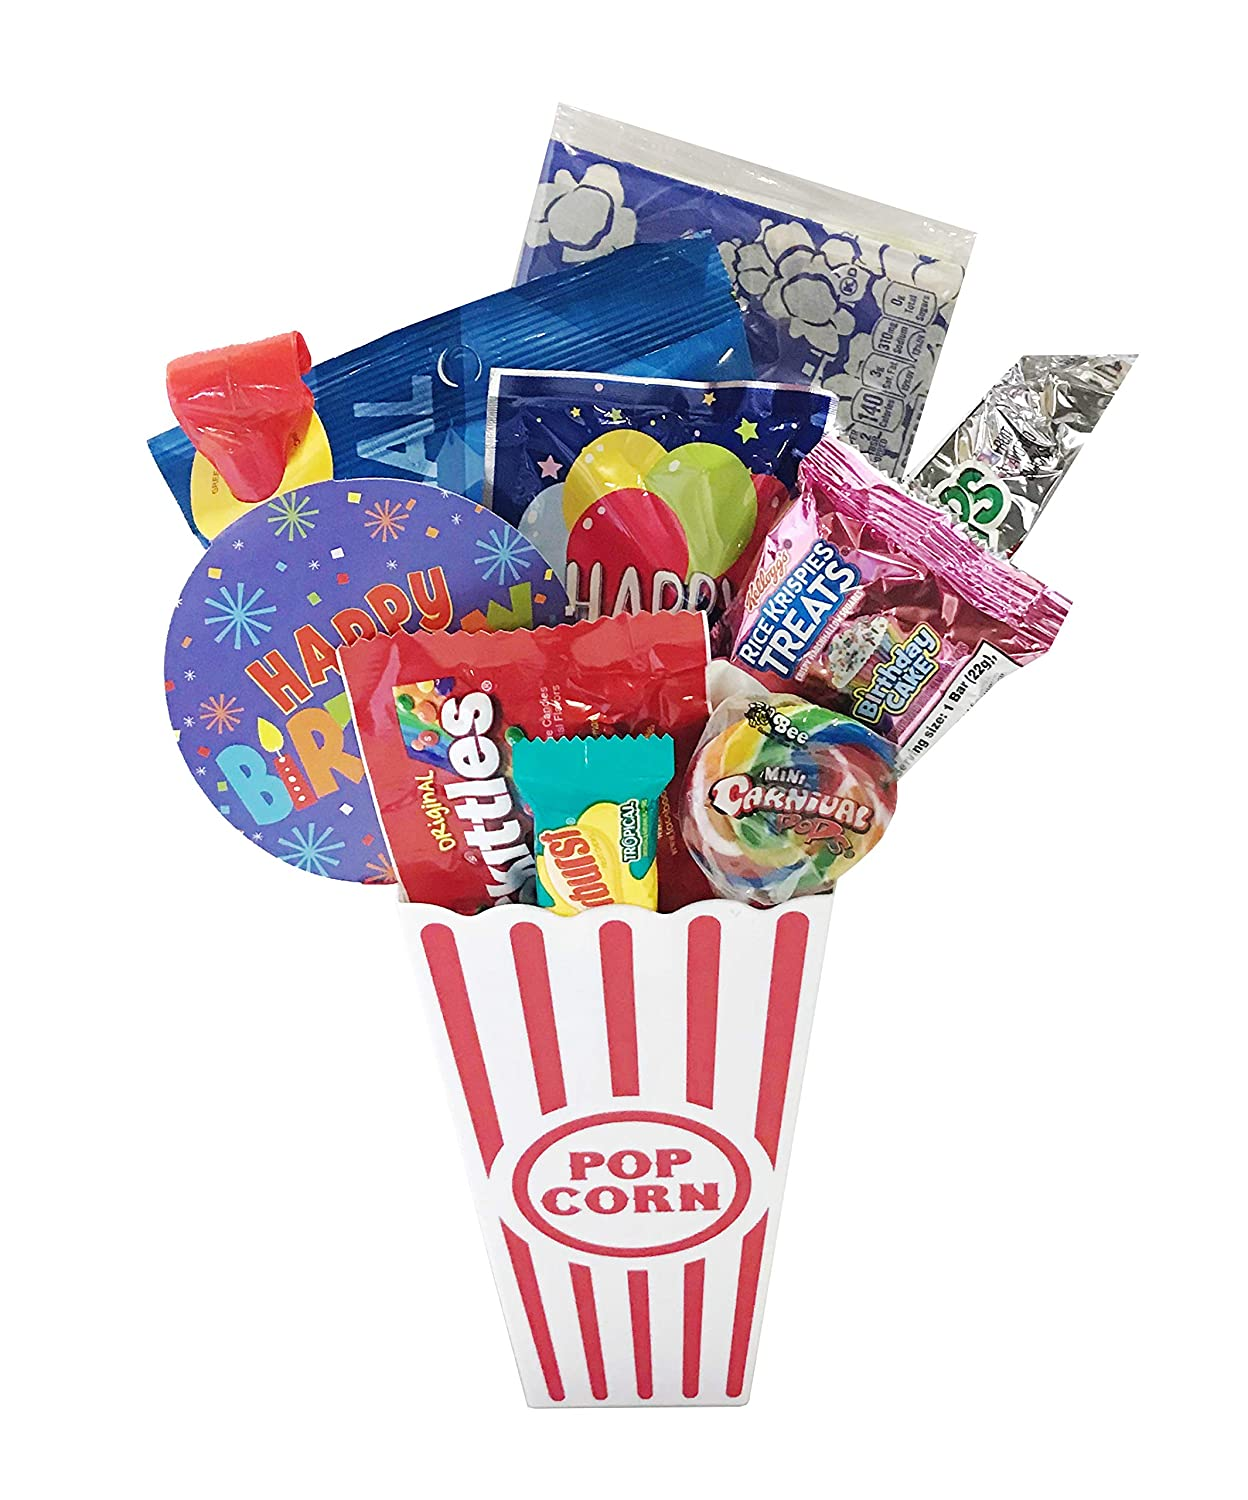 Amazon Movie Night Popcorn And Candy Birthday Gift Basket Plus Free Redbox Rental Code Card